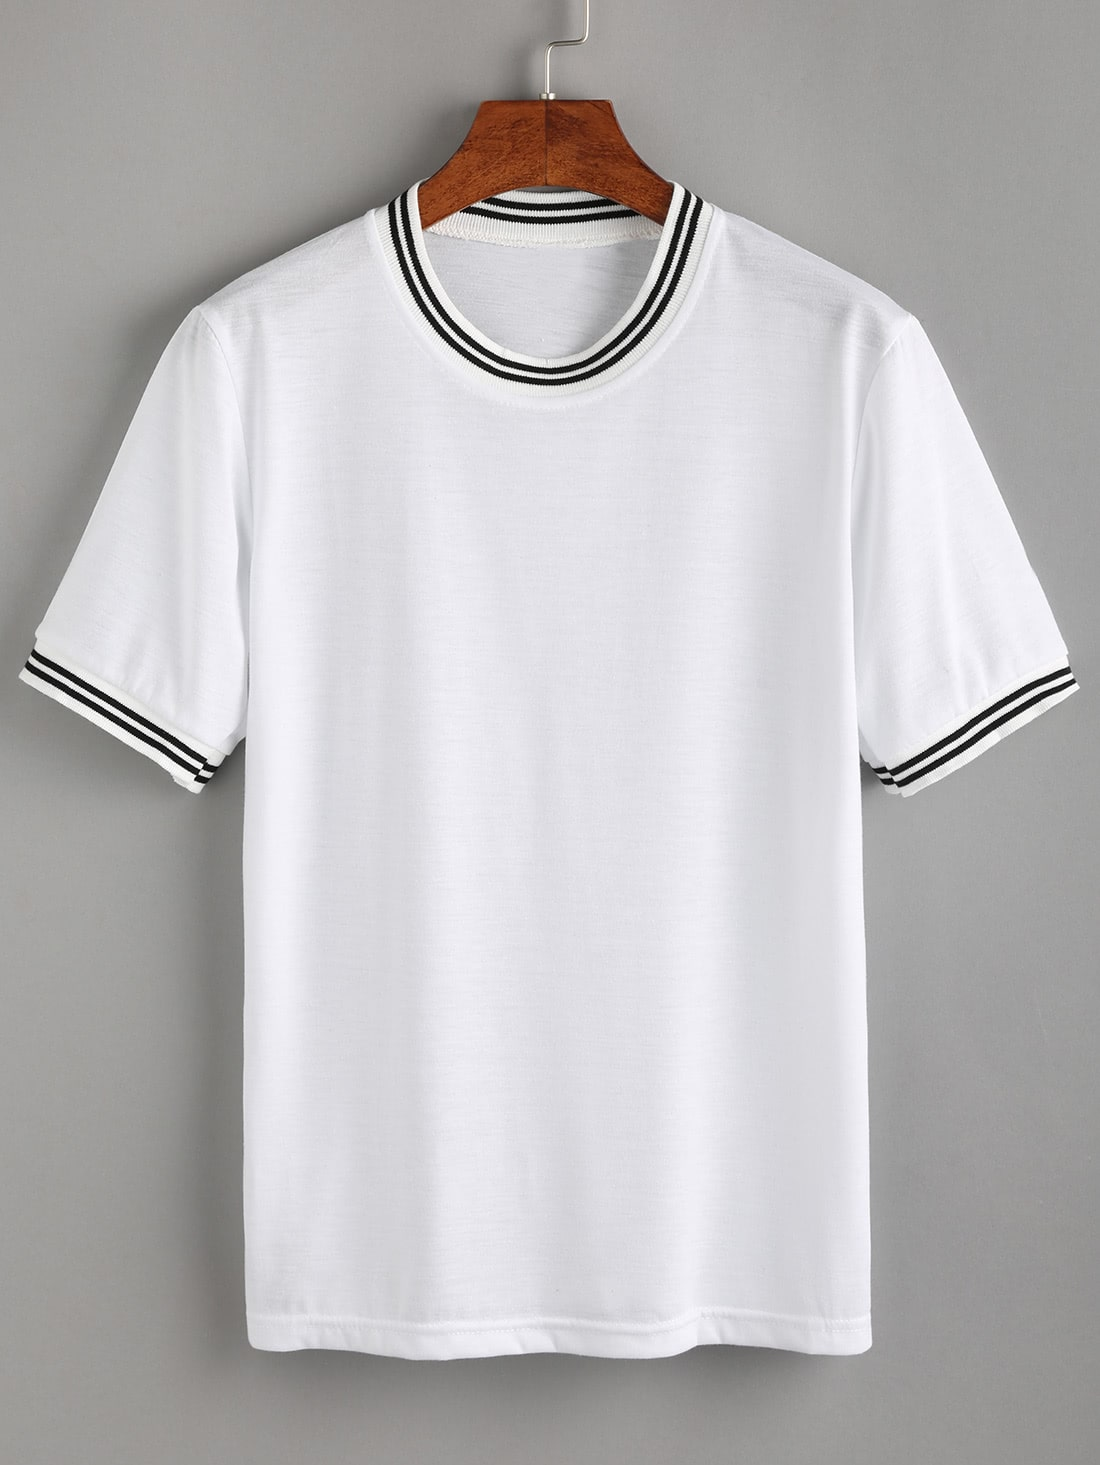 White Striped Trim T-shirtWhite Striped Trim T-shirt<br><br>color: White<br>size: L,M,XL